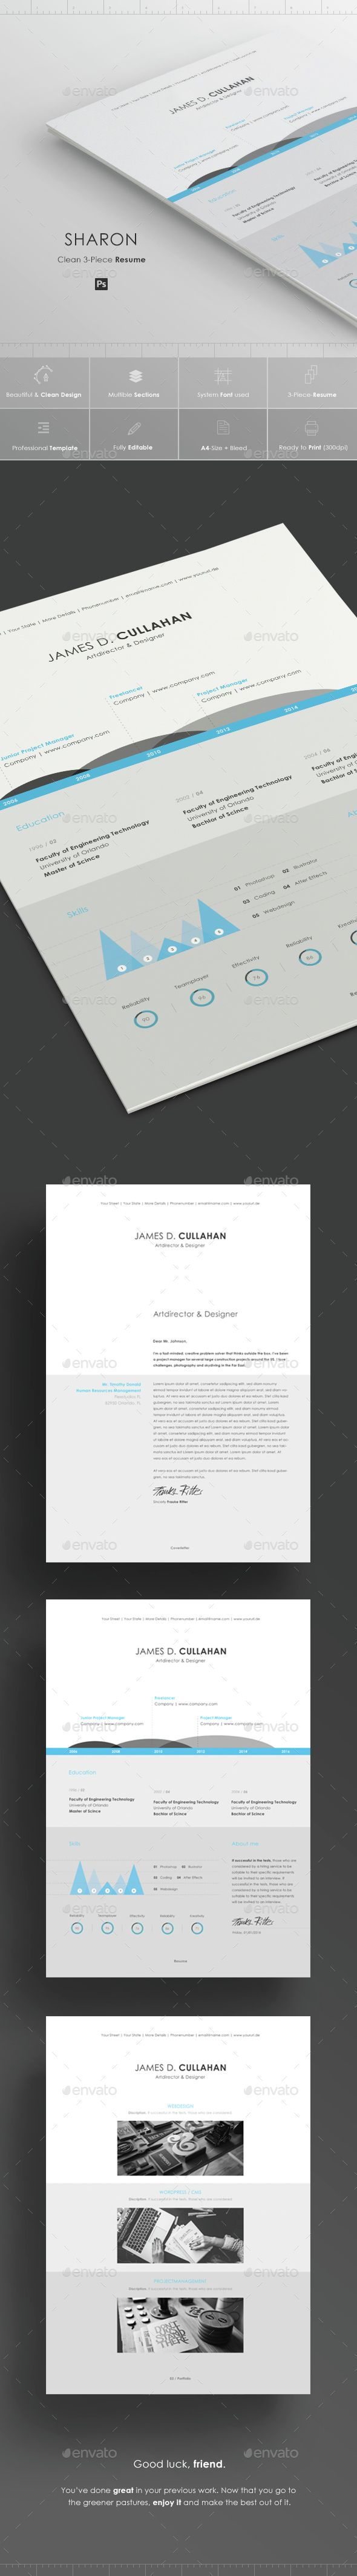 Infographic Resume Template PSD. Download here: http://graphicriver.net/item/infographic-resume/15332425?ref=ksioks